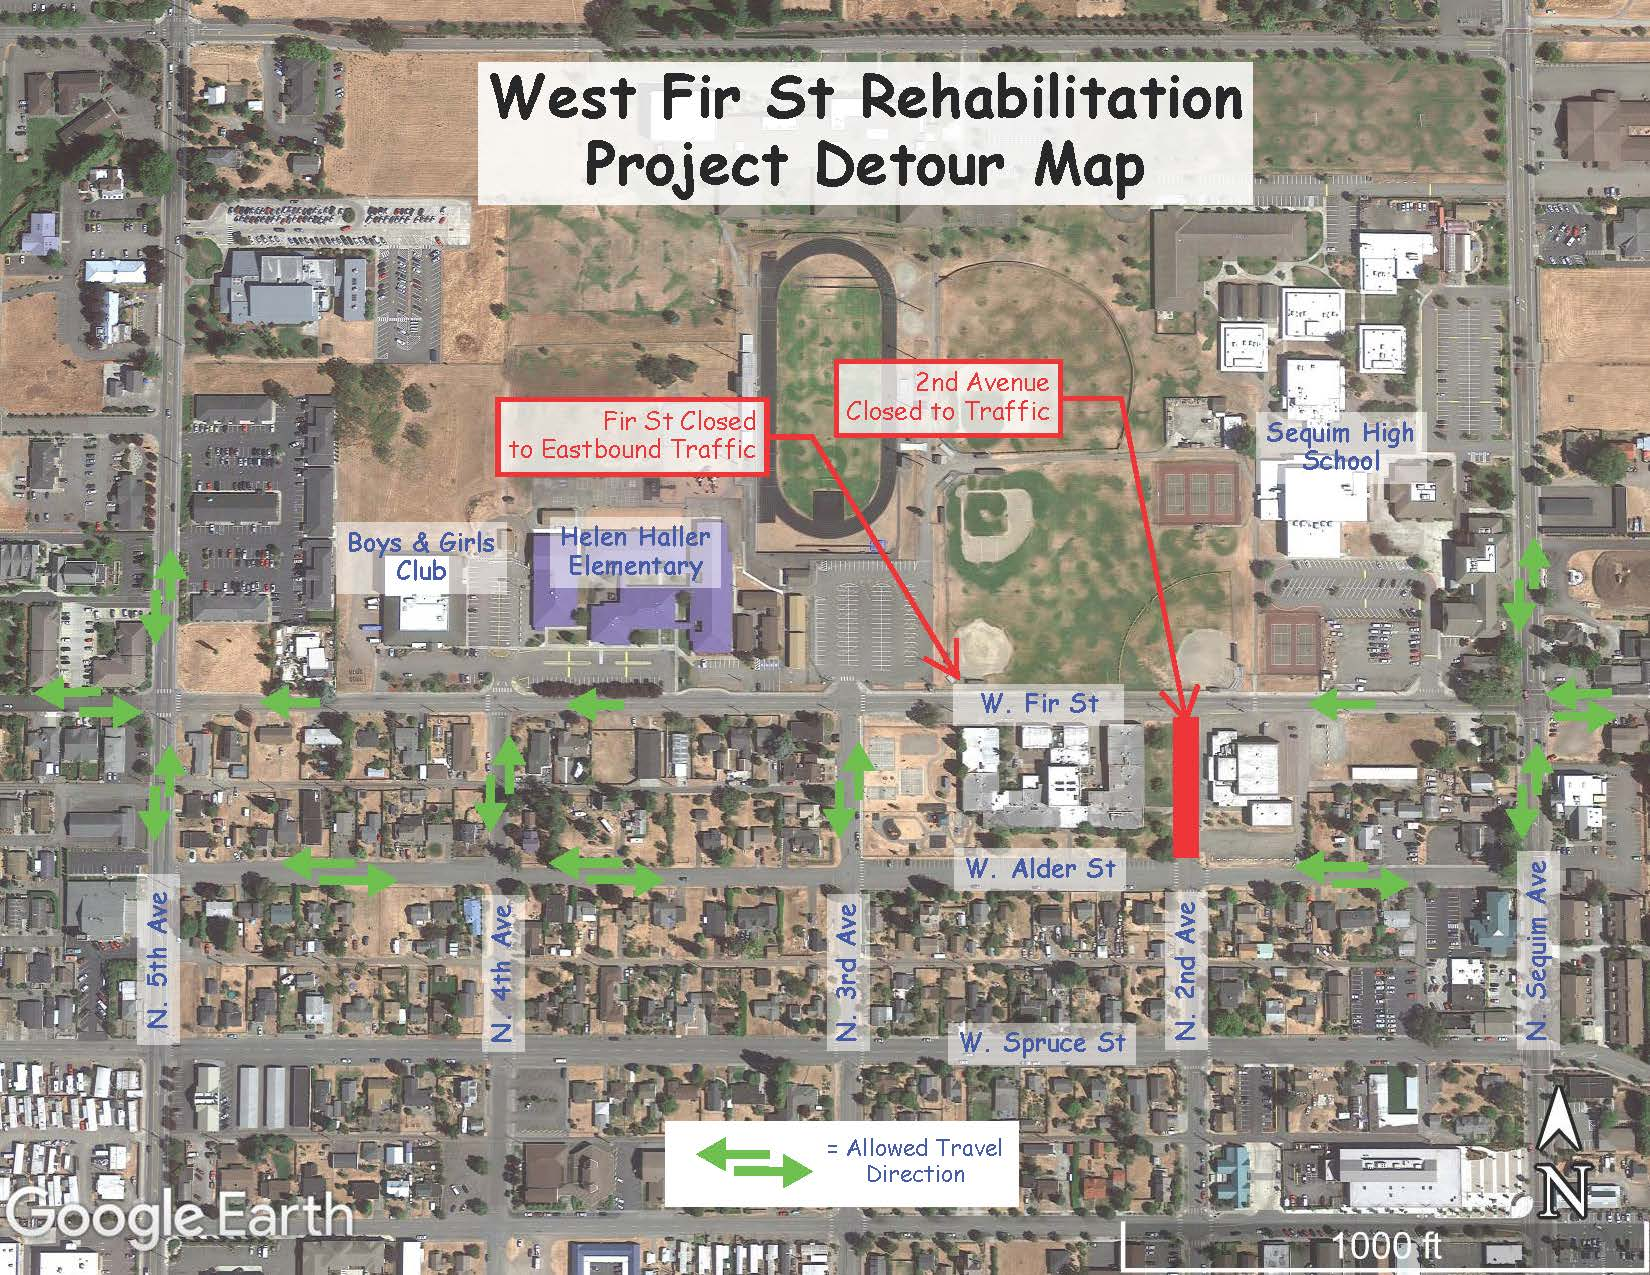 West Fir St Rehabilitation Project Detour Map